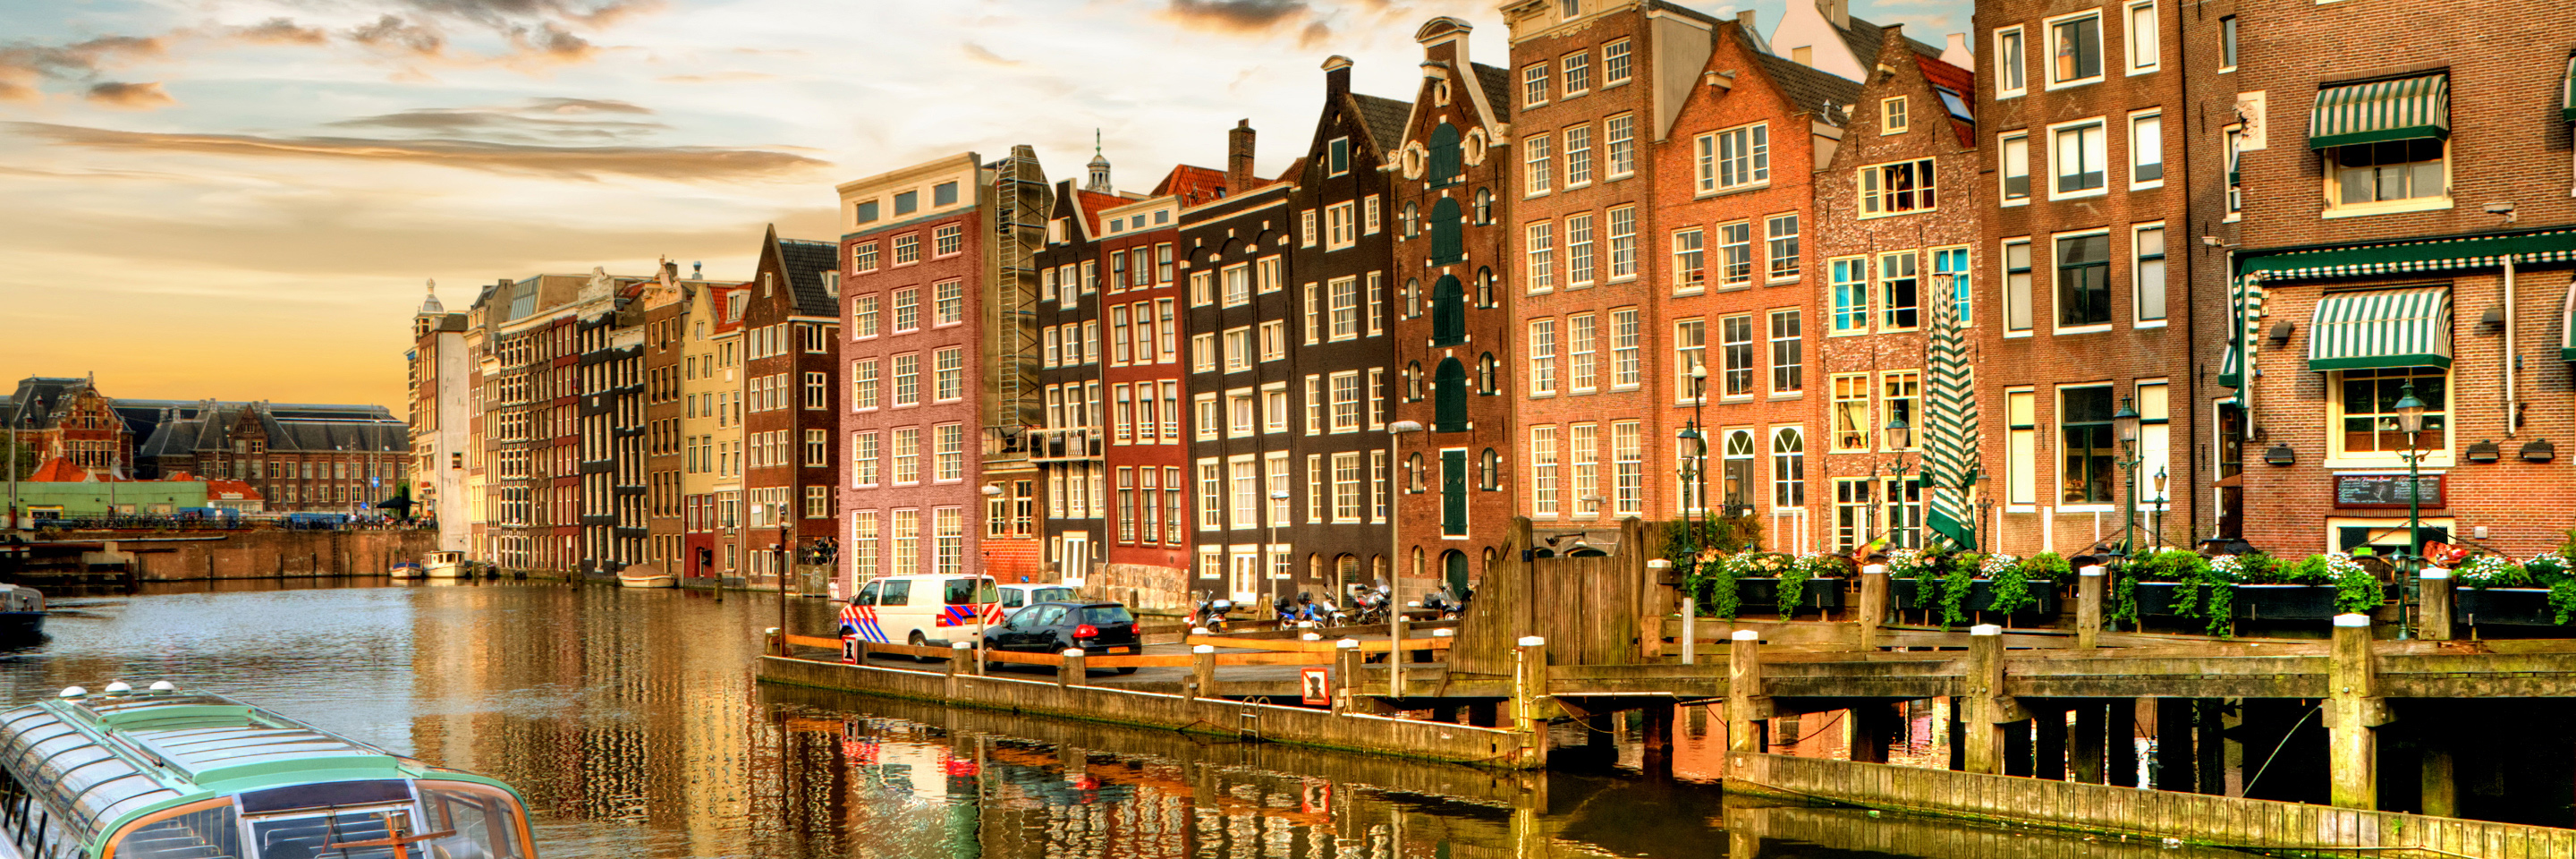 Grand Tulip Cruise of Holland & Belgium with 1 Night in Amsterdam for Garden & Nature Lovers